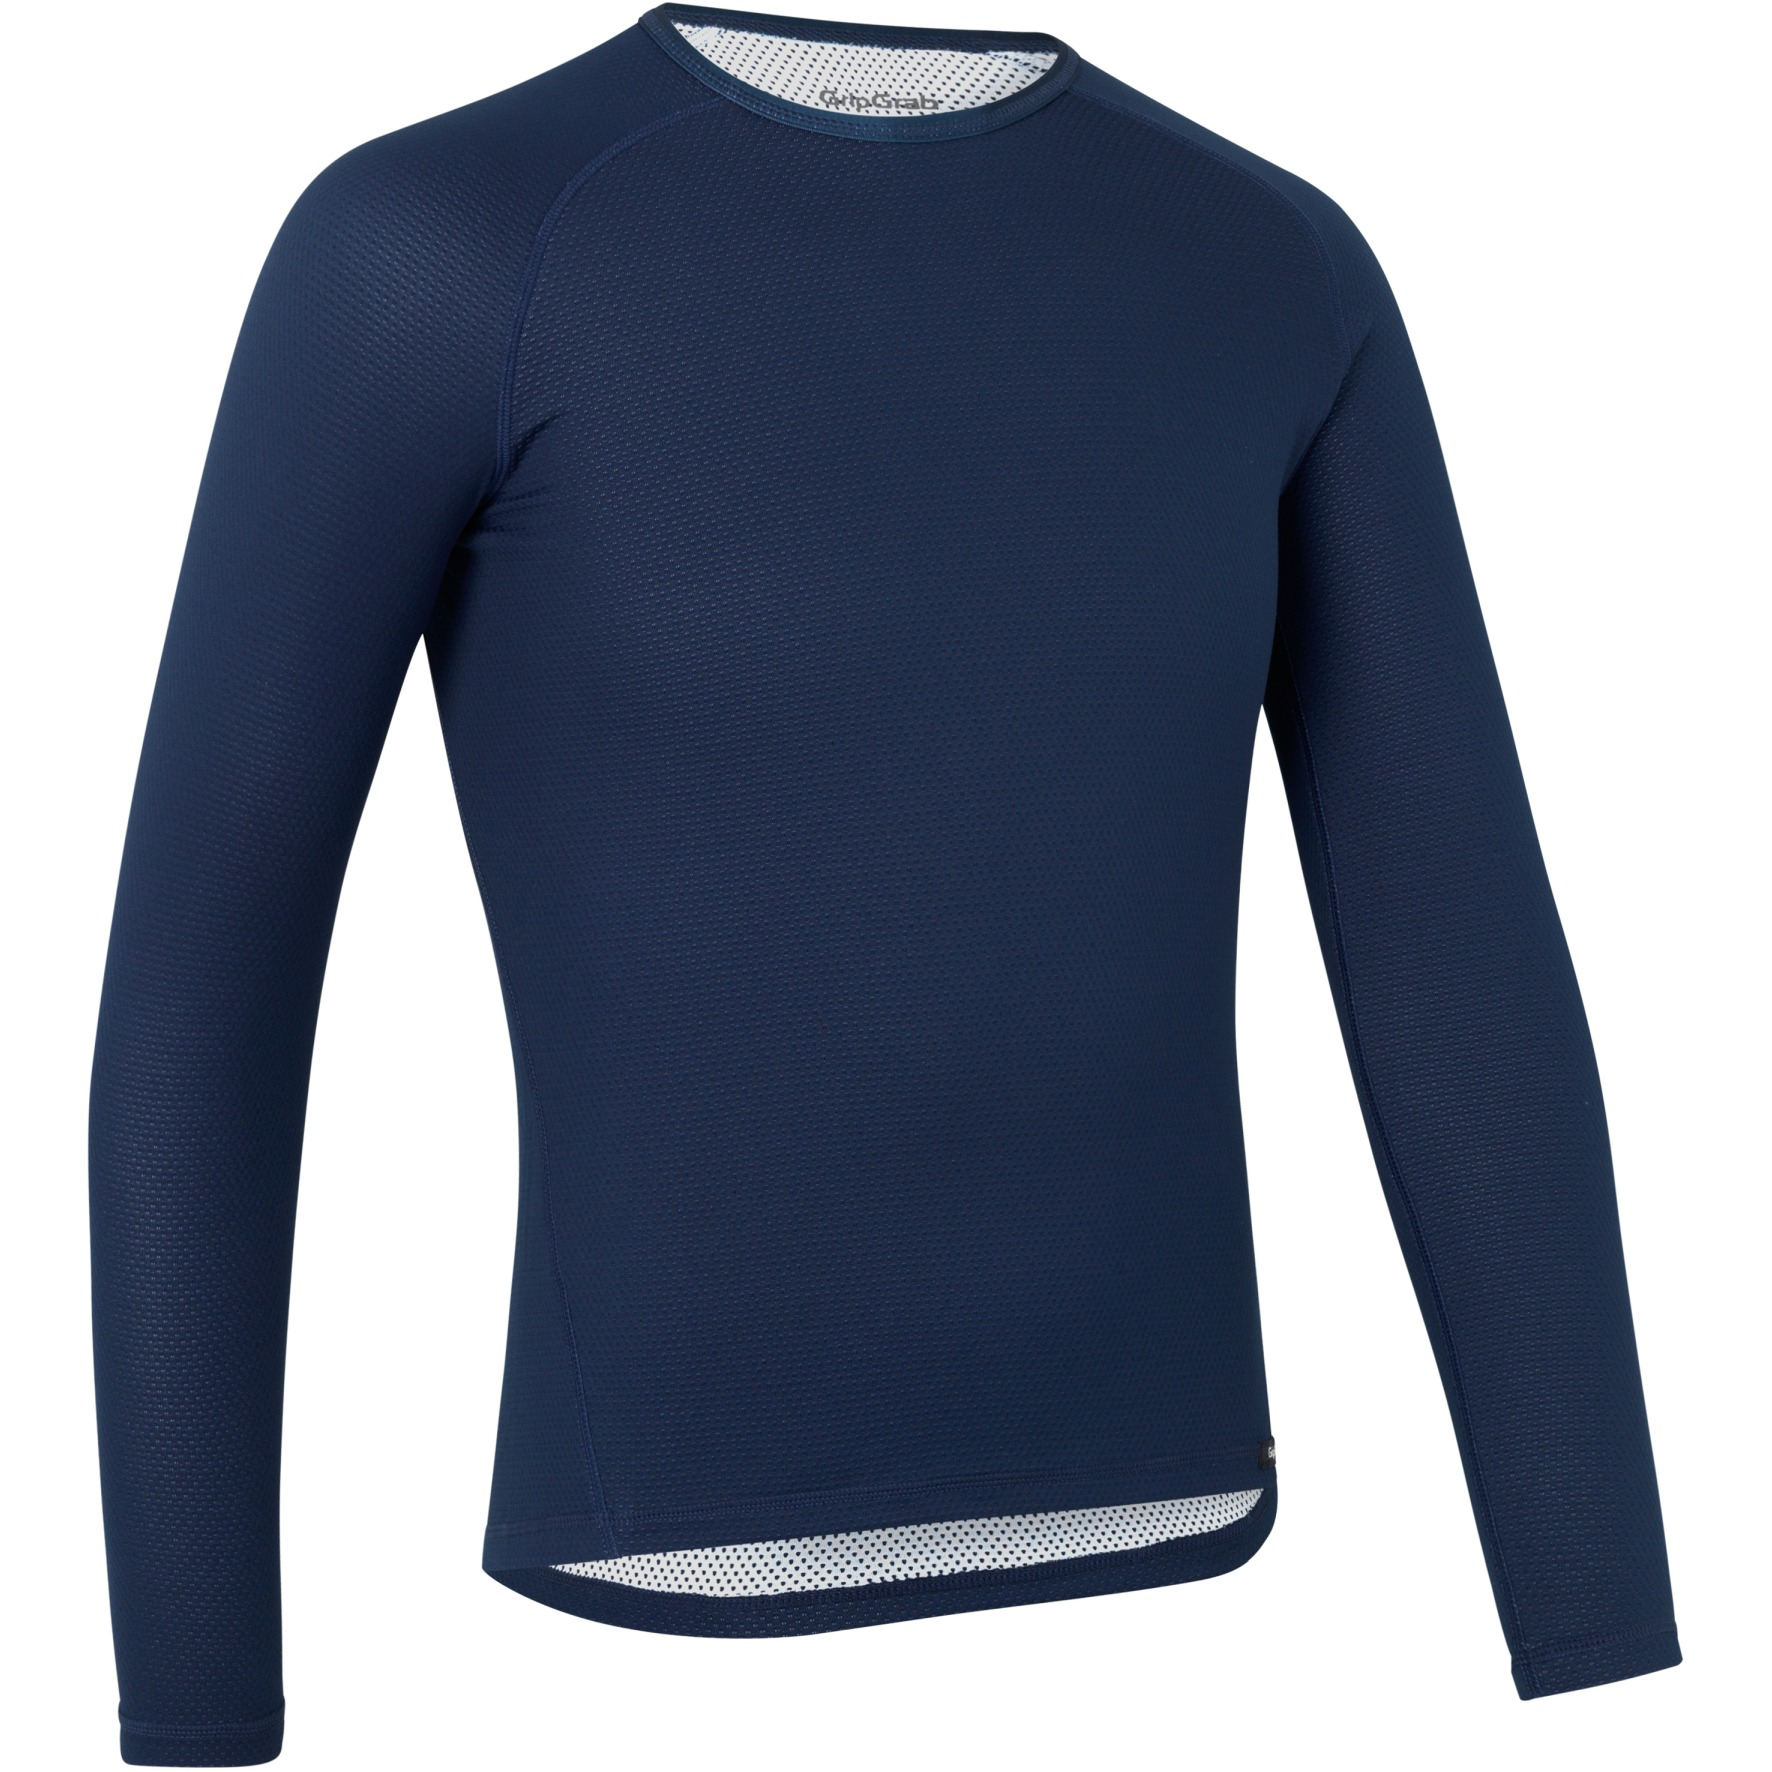 Image of GripGrab Ride Thermal Long Sleeve Base Layer - Navy Blue